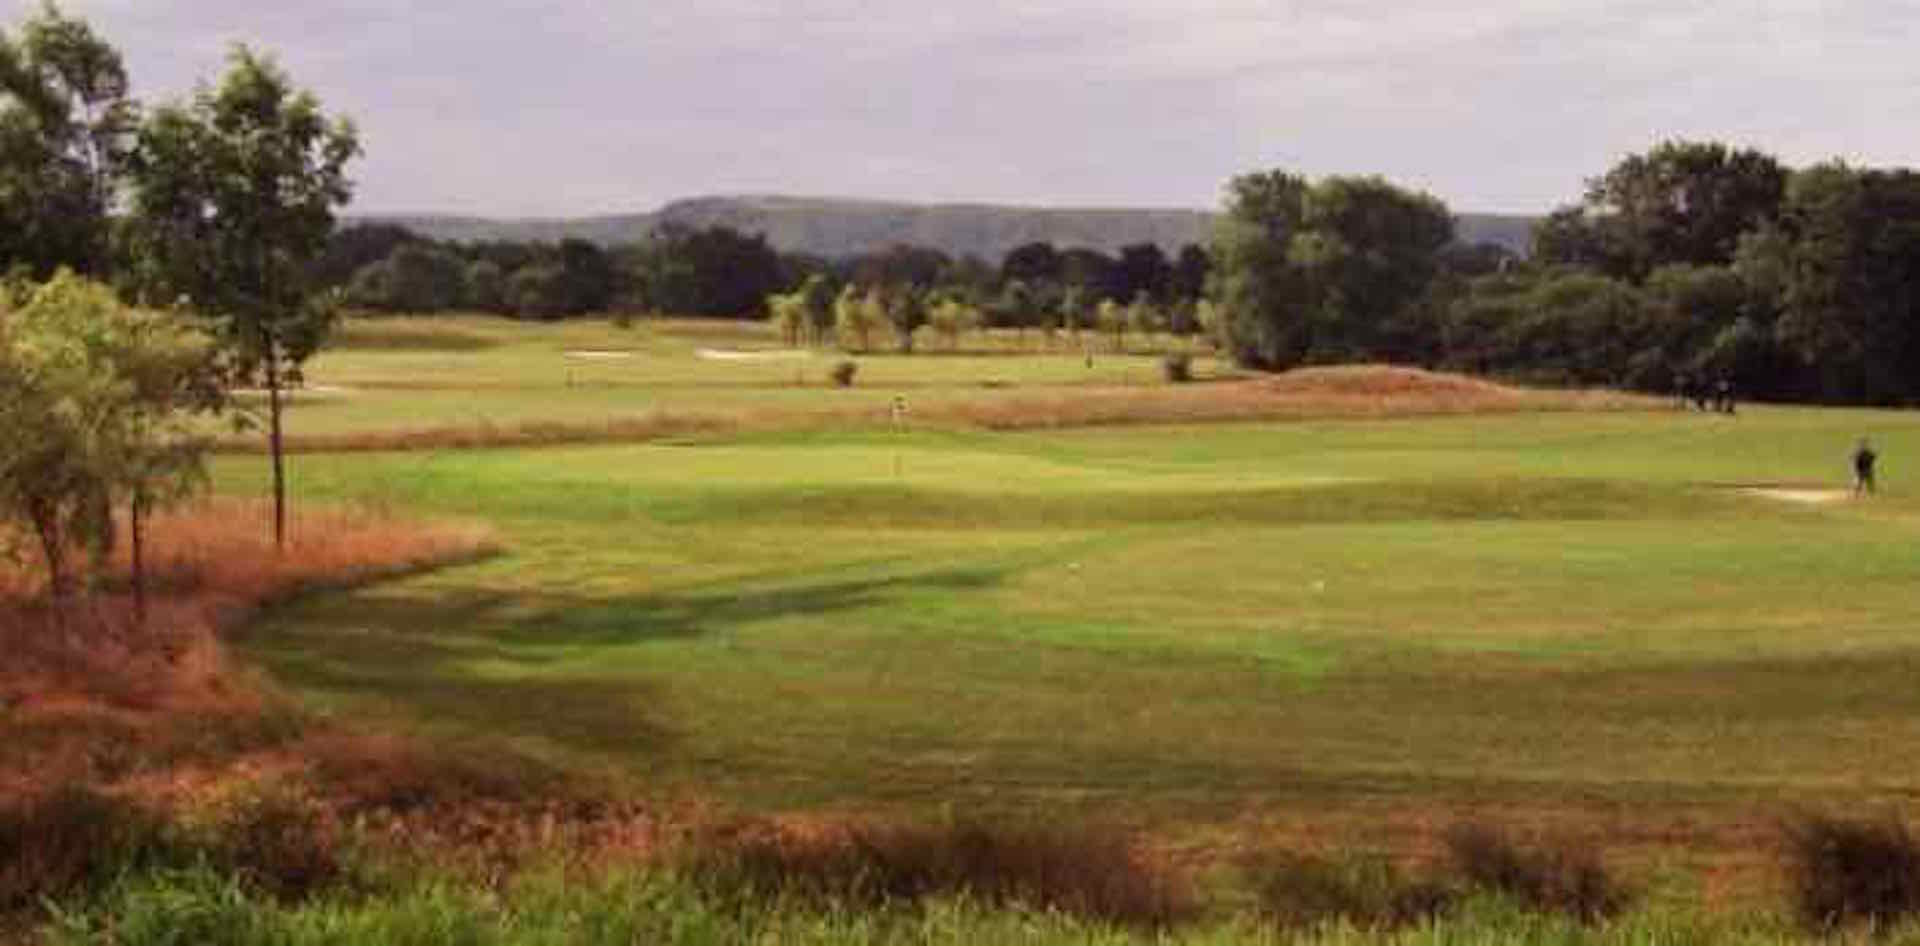 Property Week – Dig up golf courses to solve housing crisis